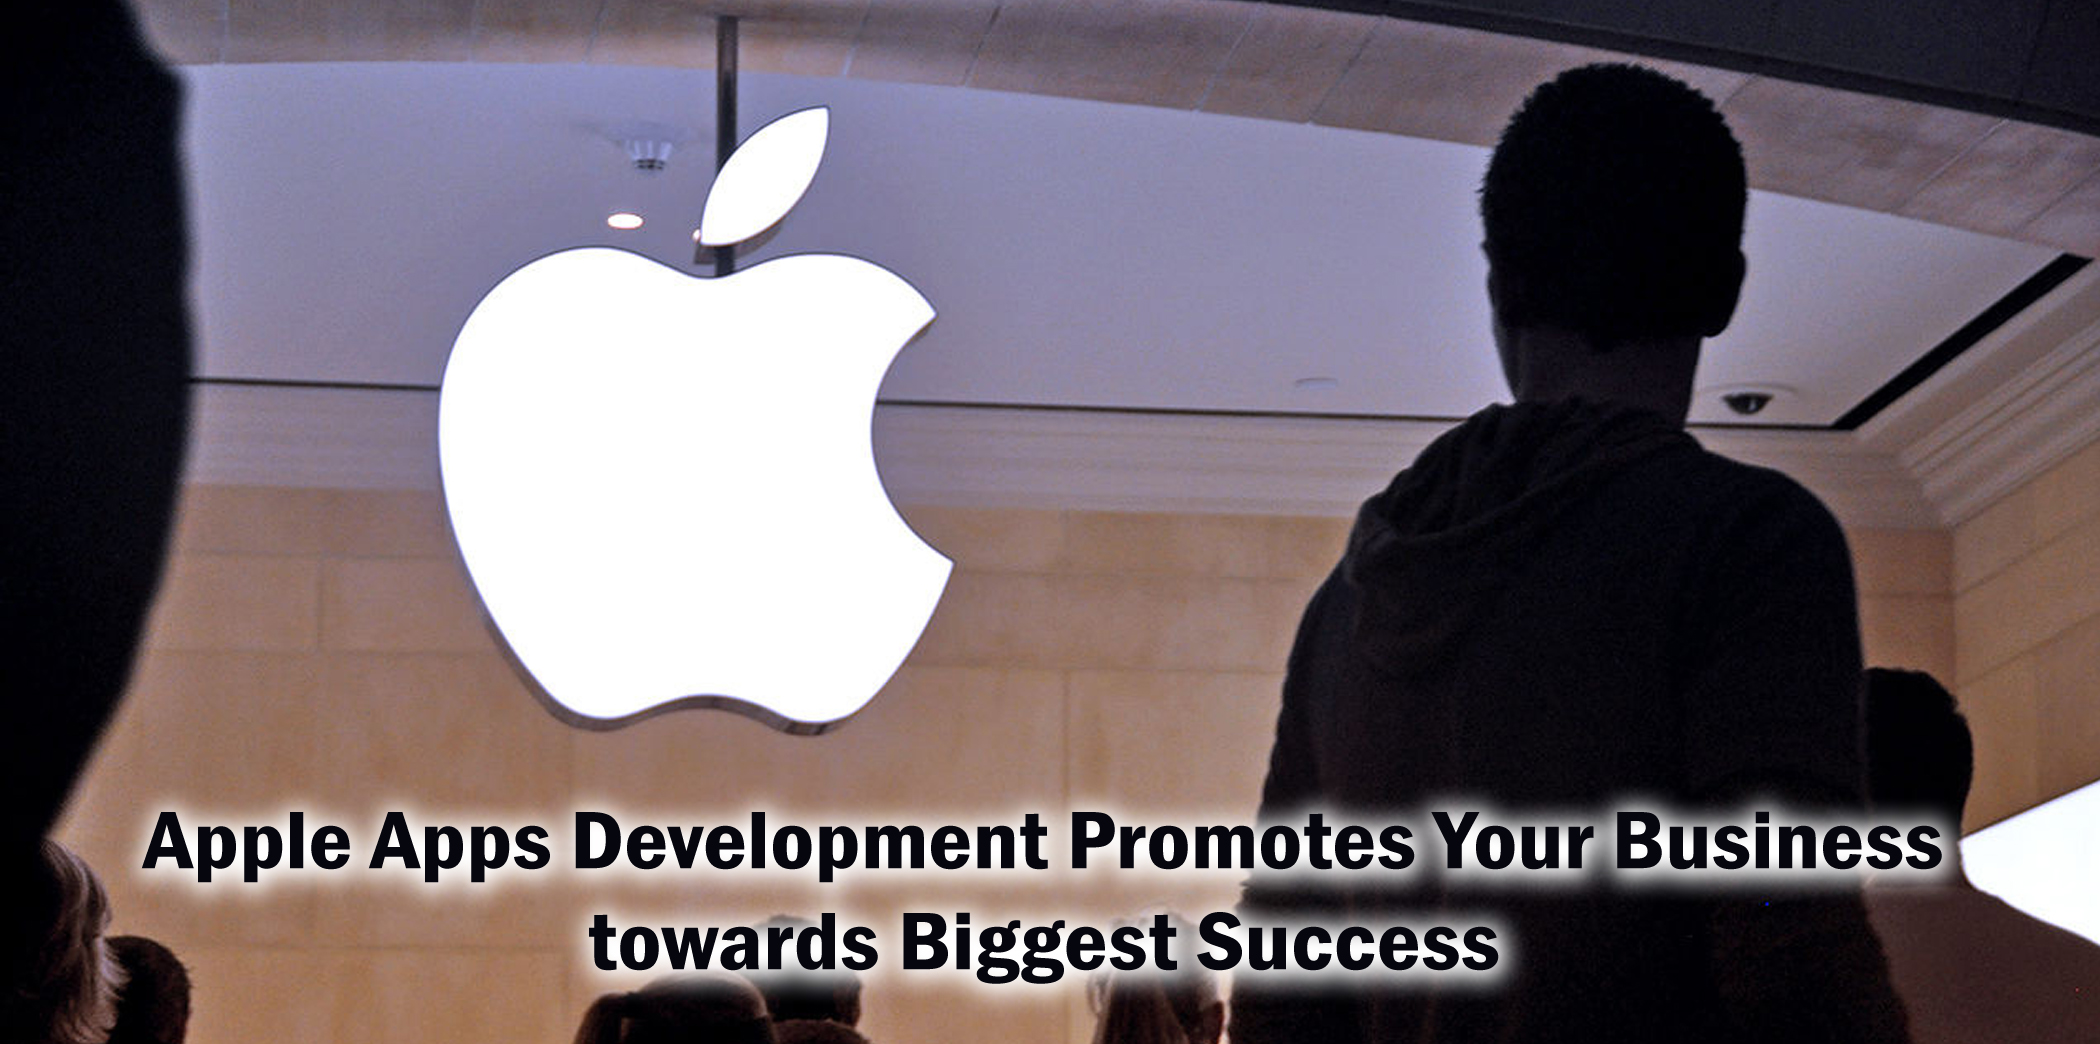 Apple Apps Development Promotes Your Business towards Biggest Success